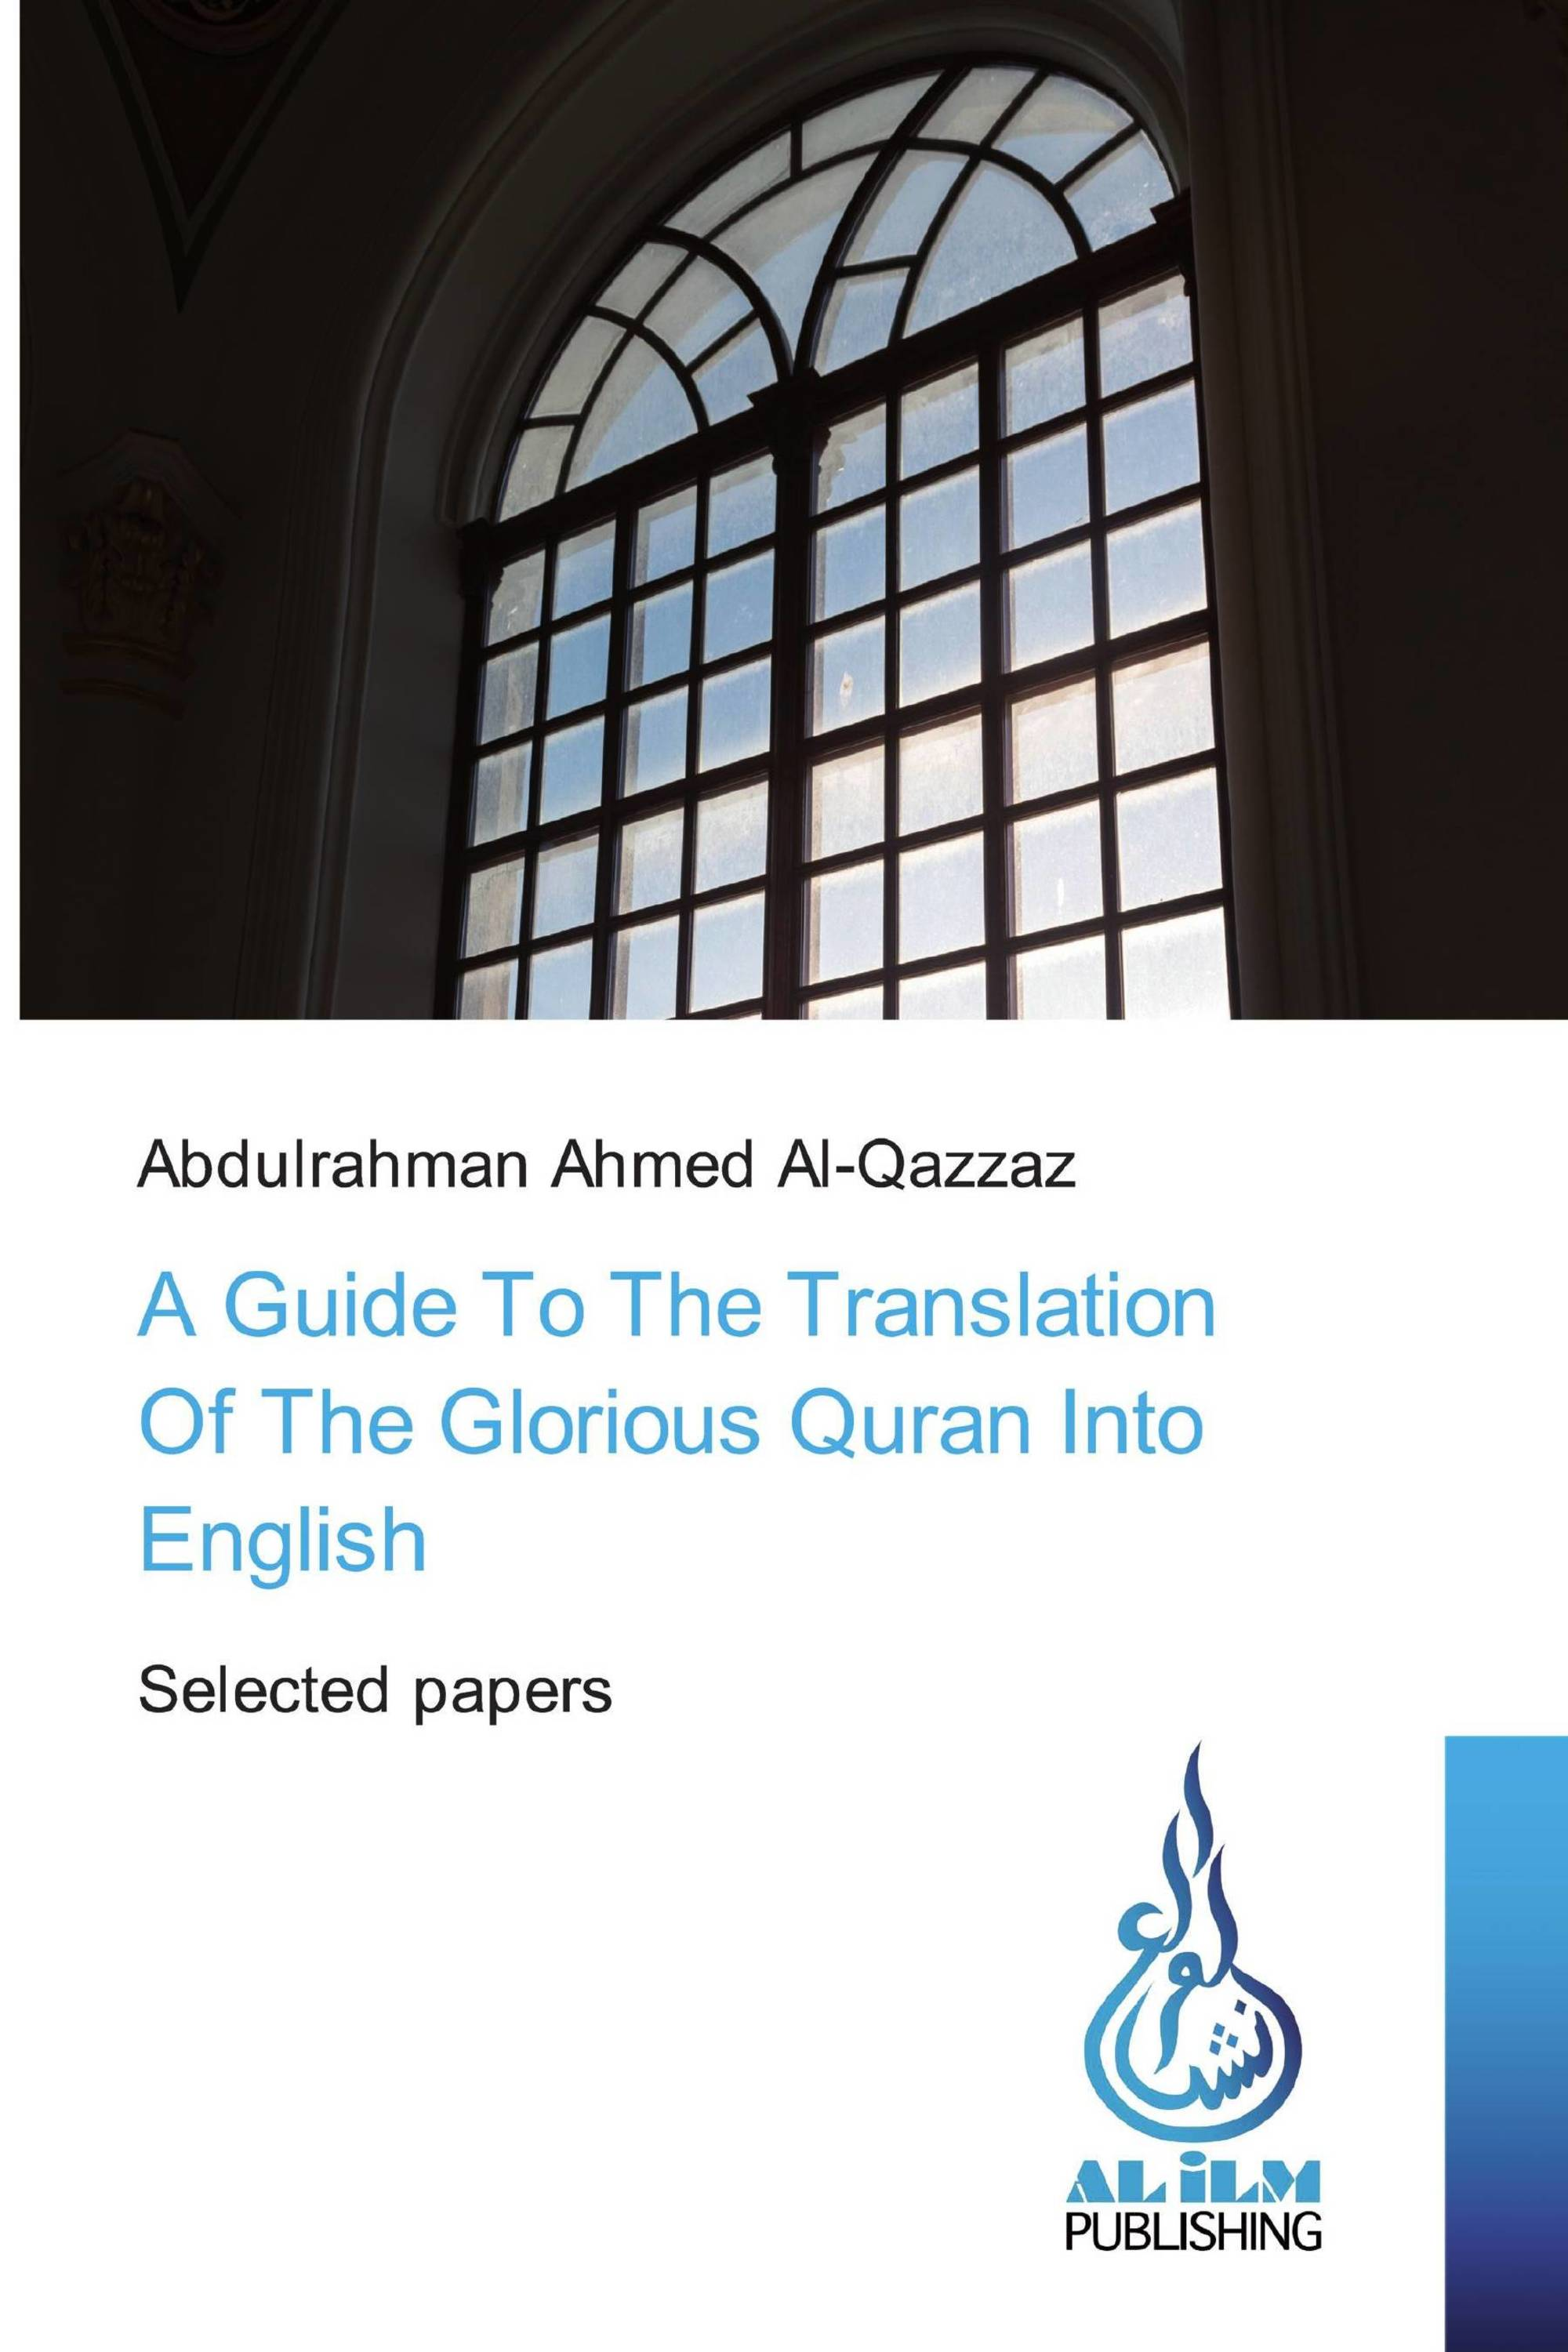 A Guide To The Translation Of The Glorious Quran Into English